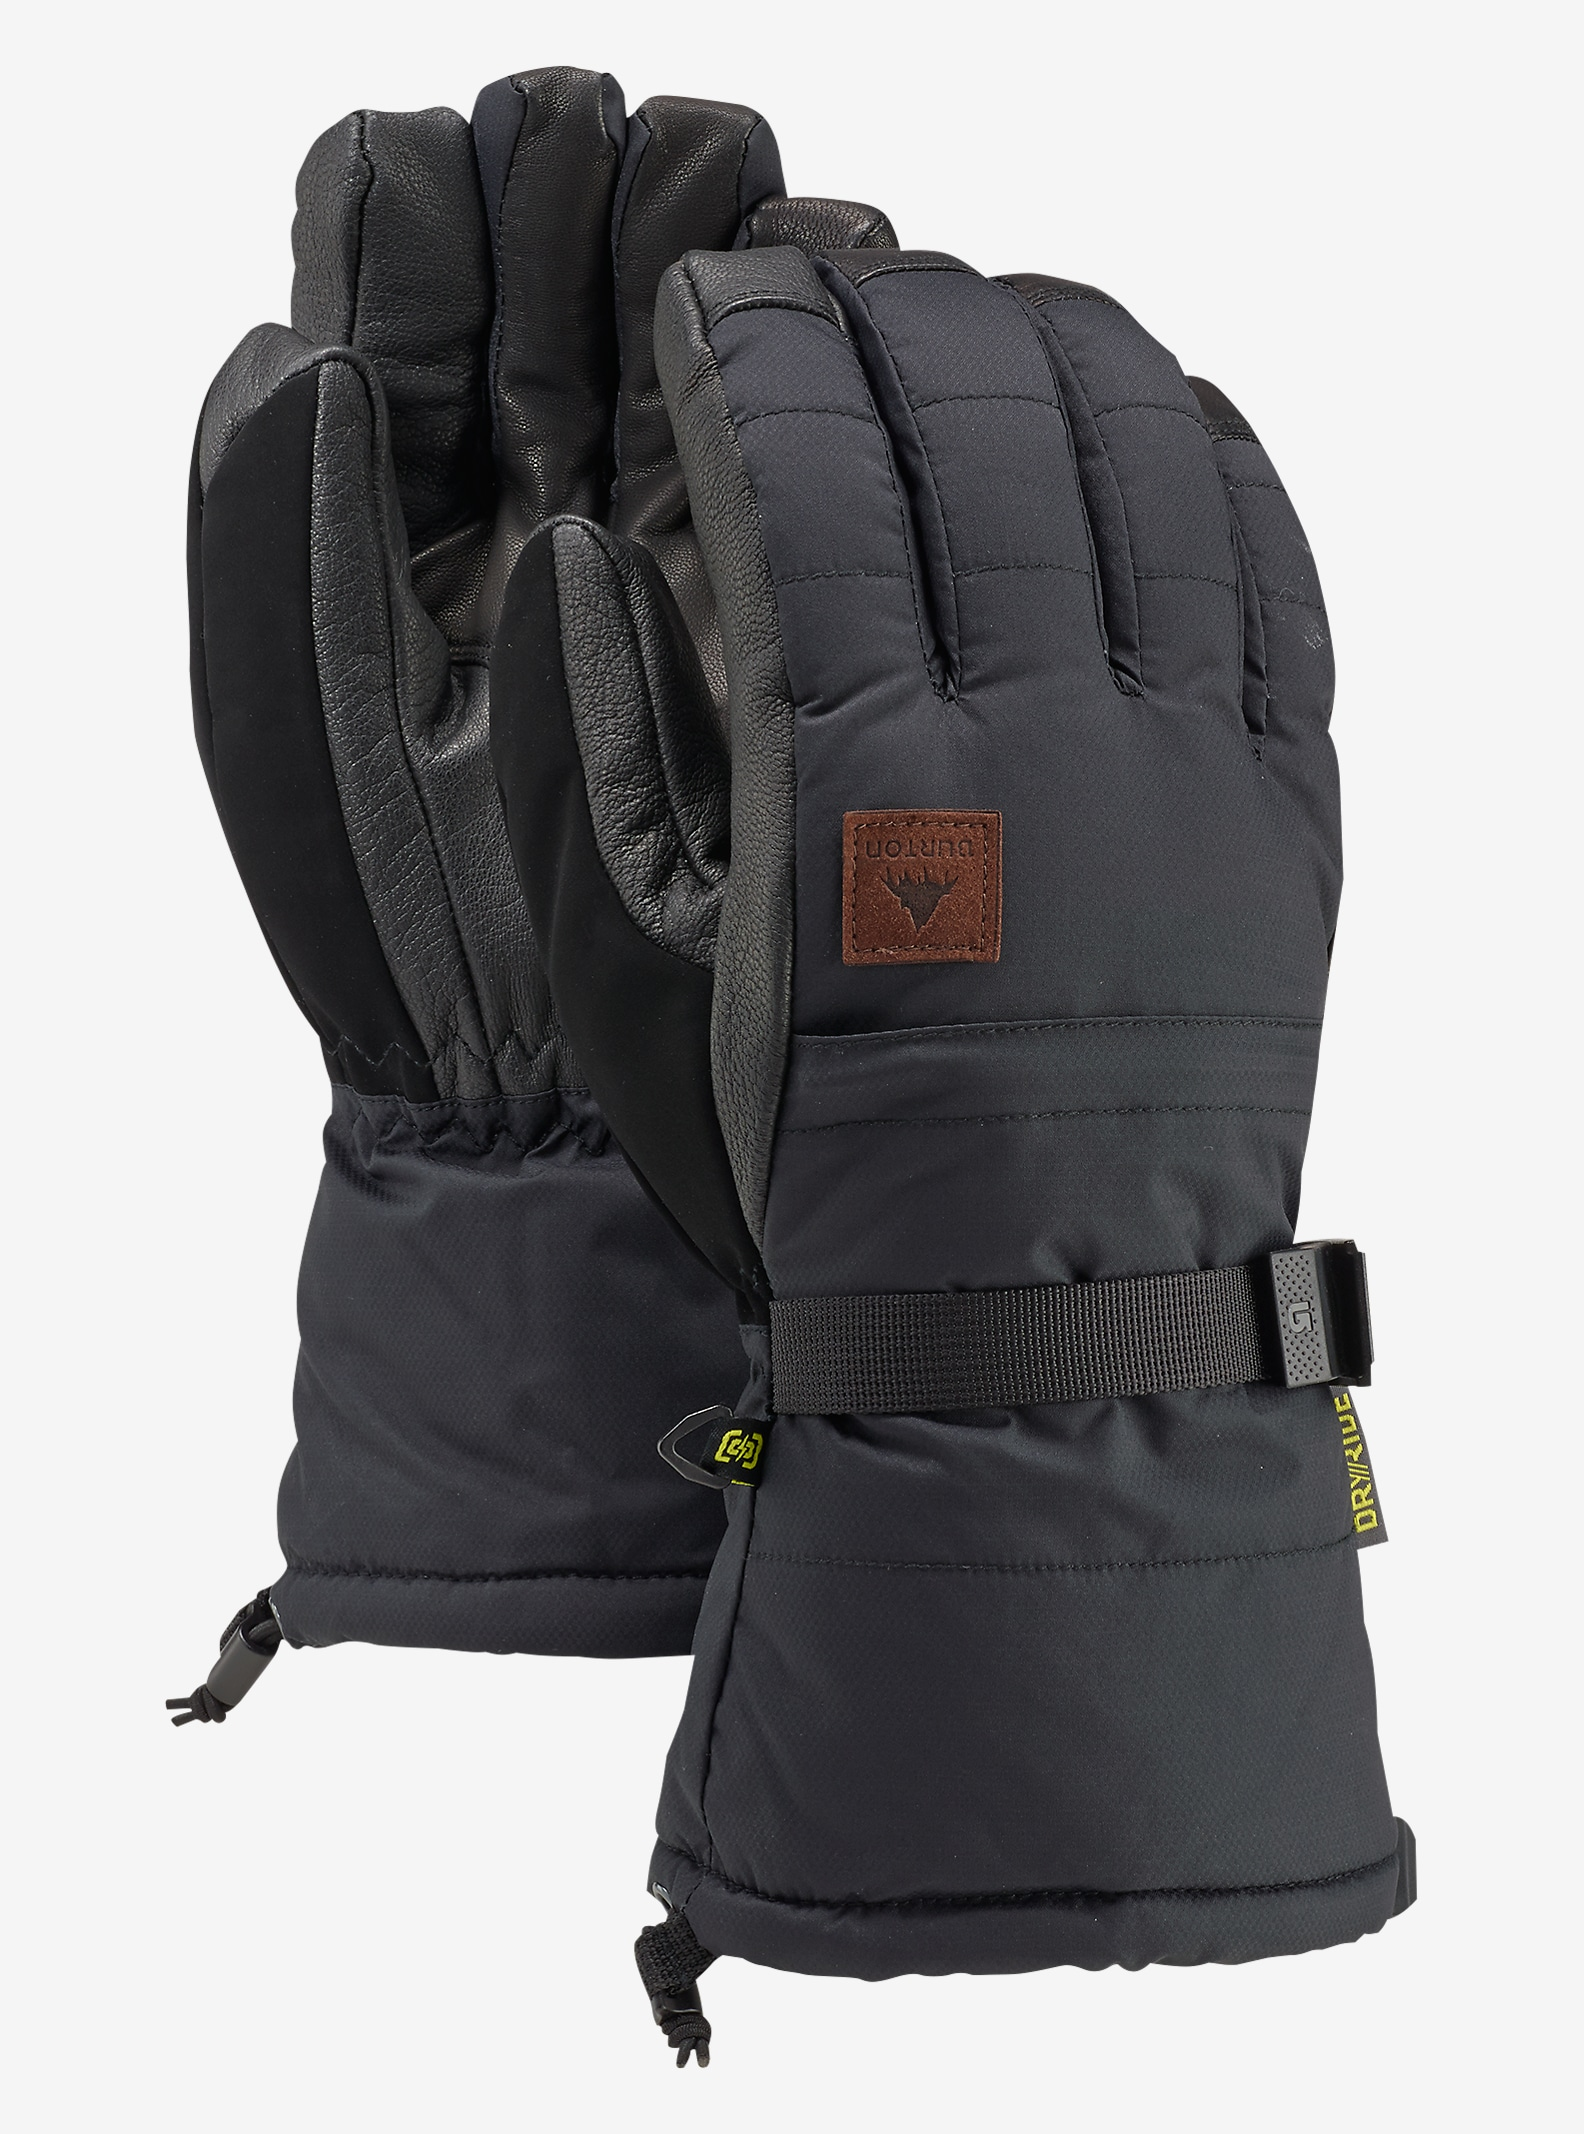 Burton Warmest Glove shown in True Black